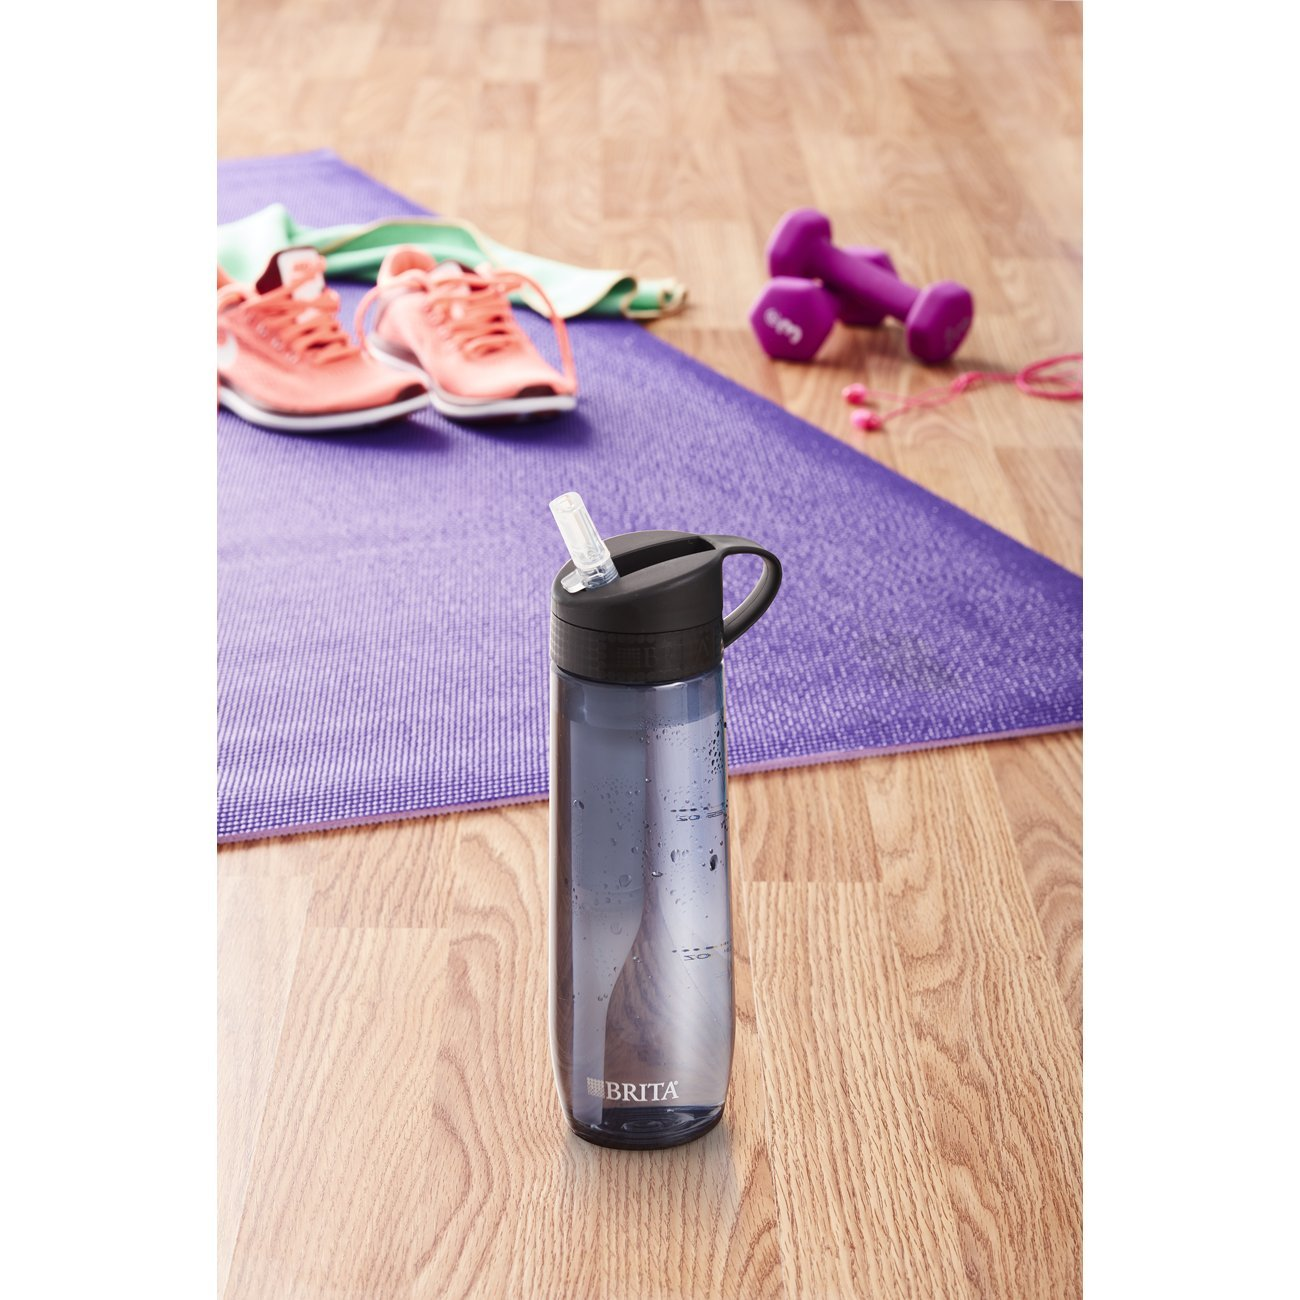 Brita 23.7 Ounce Hard Sided Water Bottle with Filter - BPA Free - Gray by Brita (Image #8)